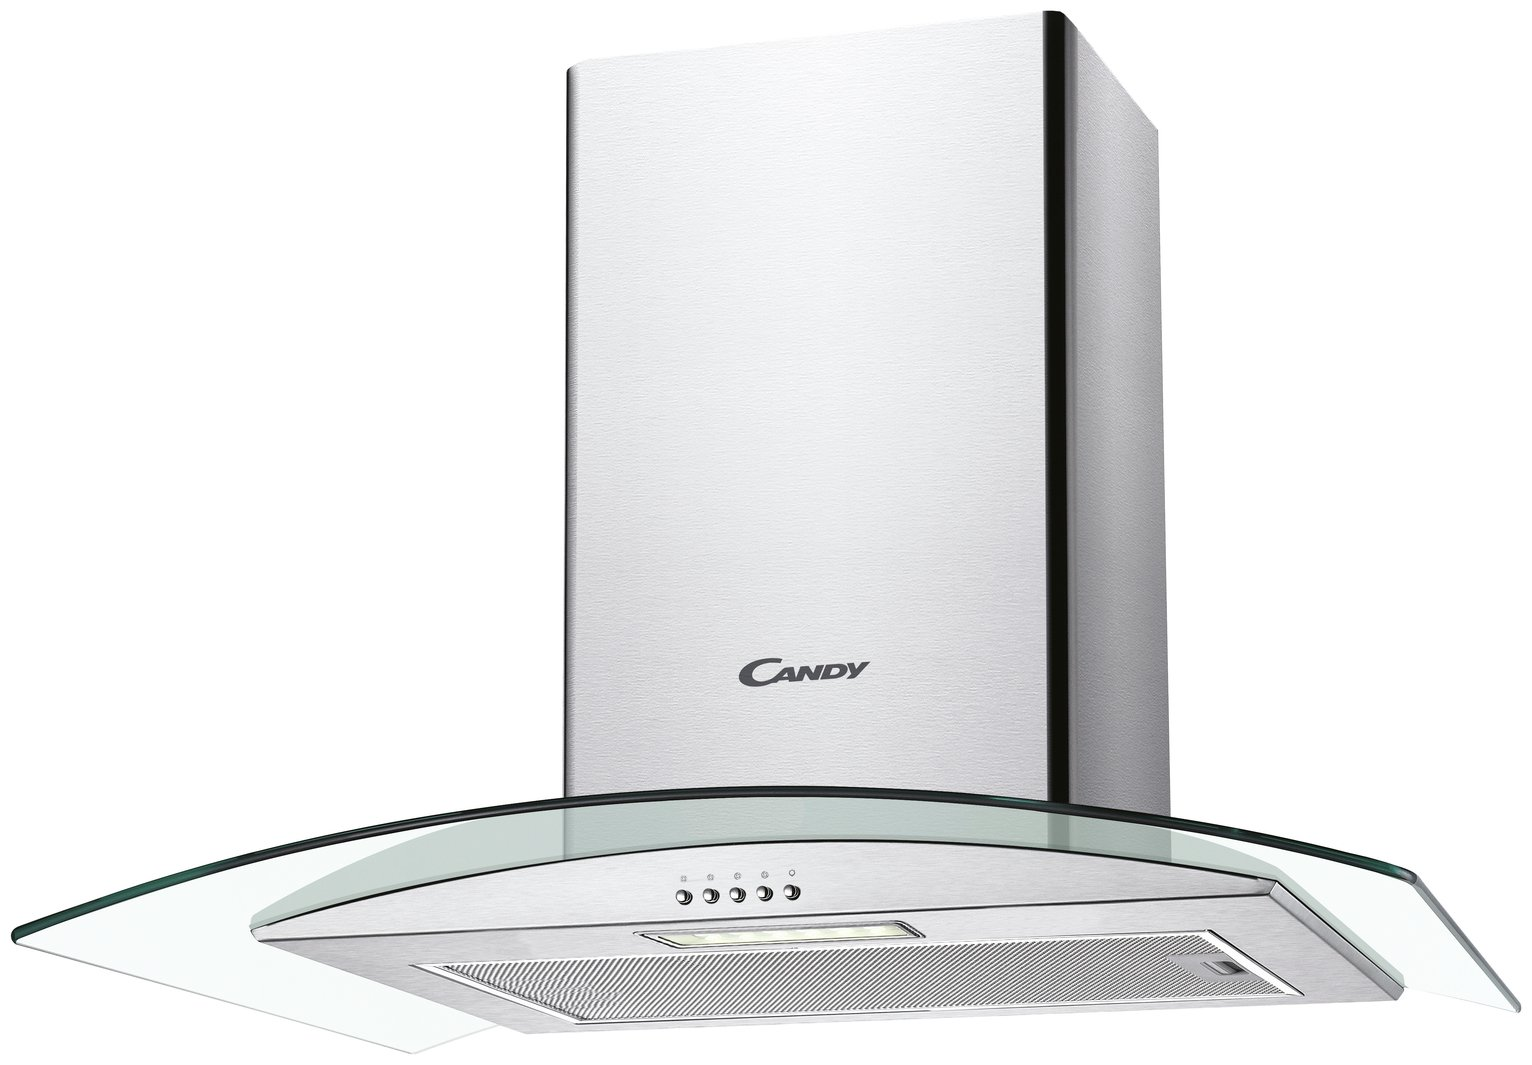 Candy CGM64/1X 60cm Cooker Hood Stainless Steel